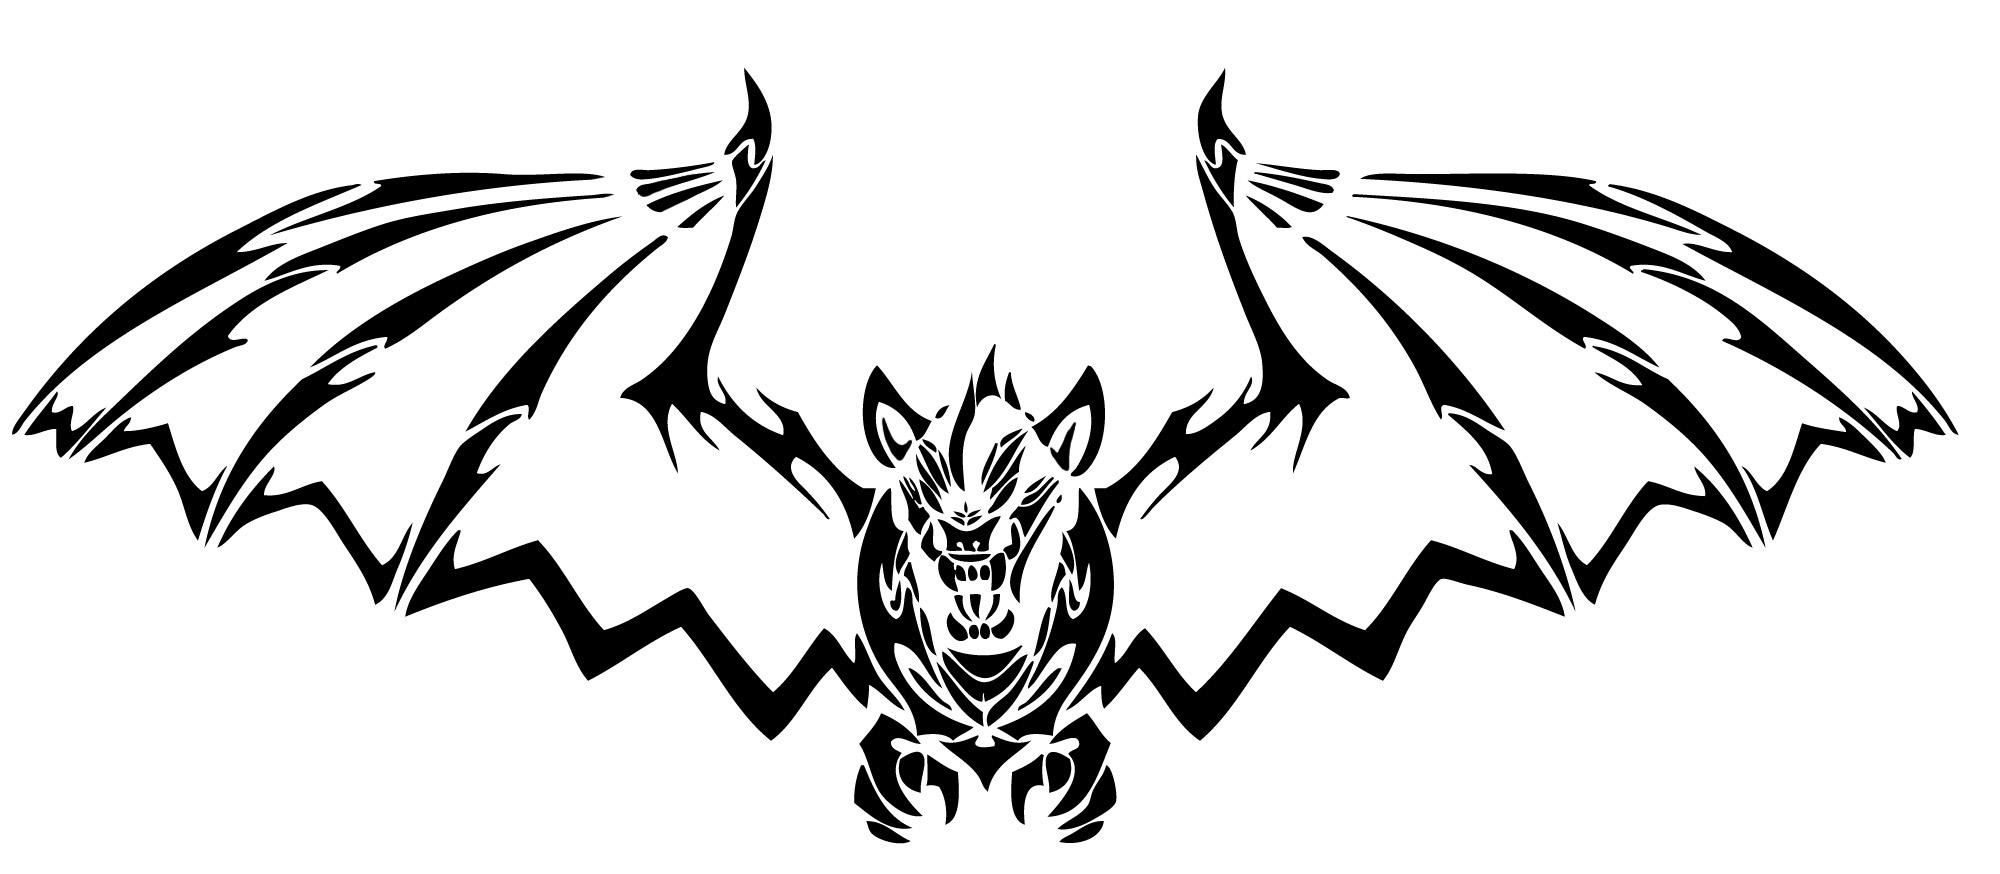 Vampire Bat Coloring Pages » Coloring Pages Kids